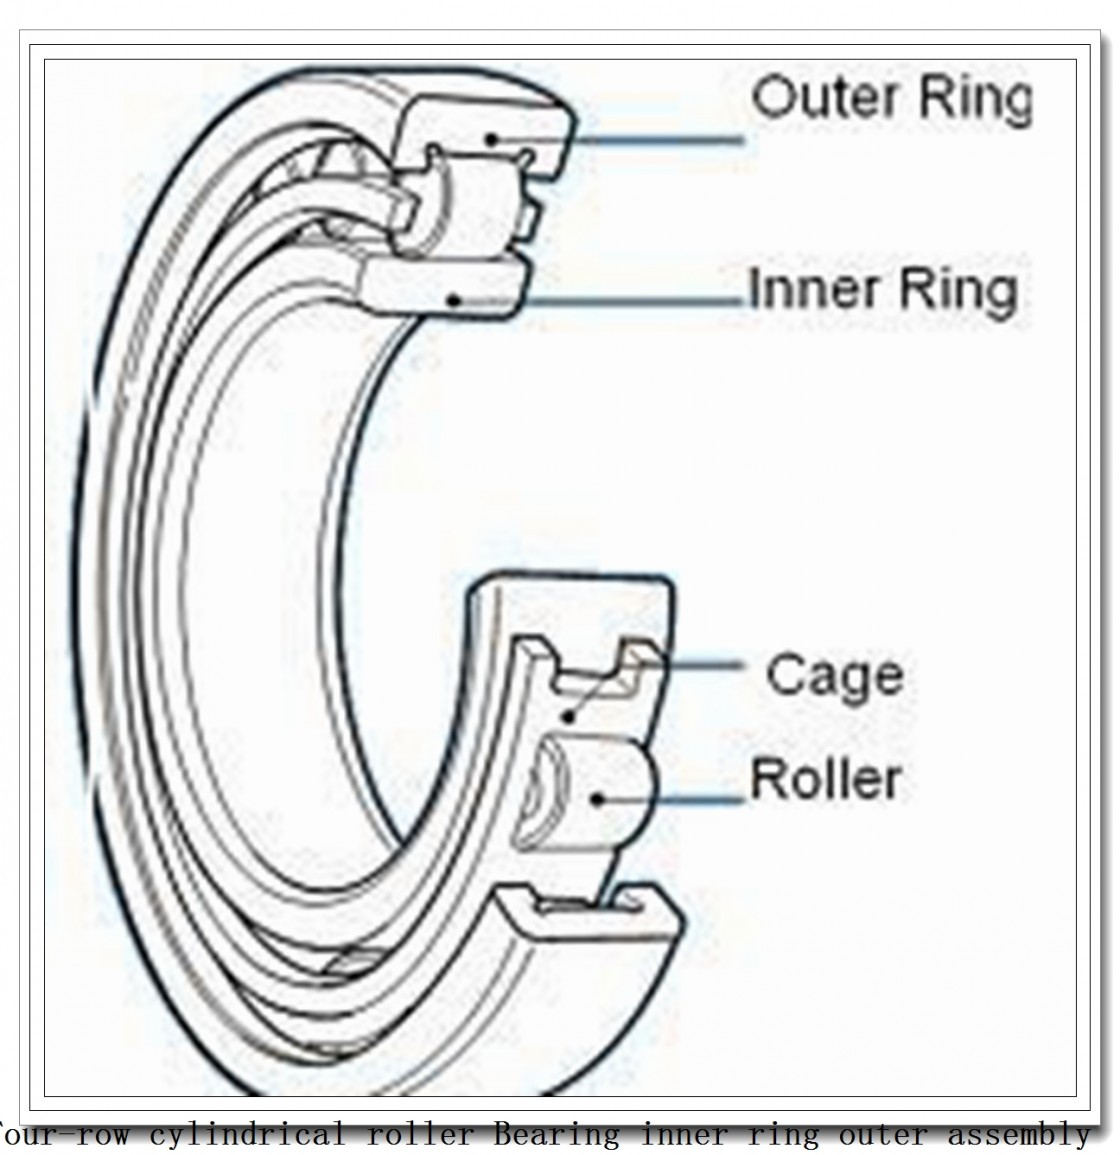 170ryl6462 four-row cylindrical roller Bearing inner ring outer assembly